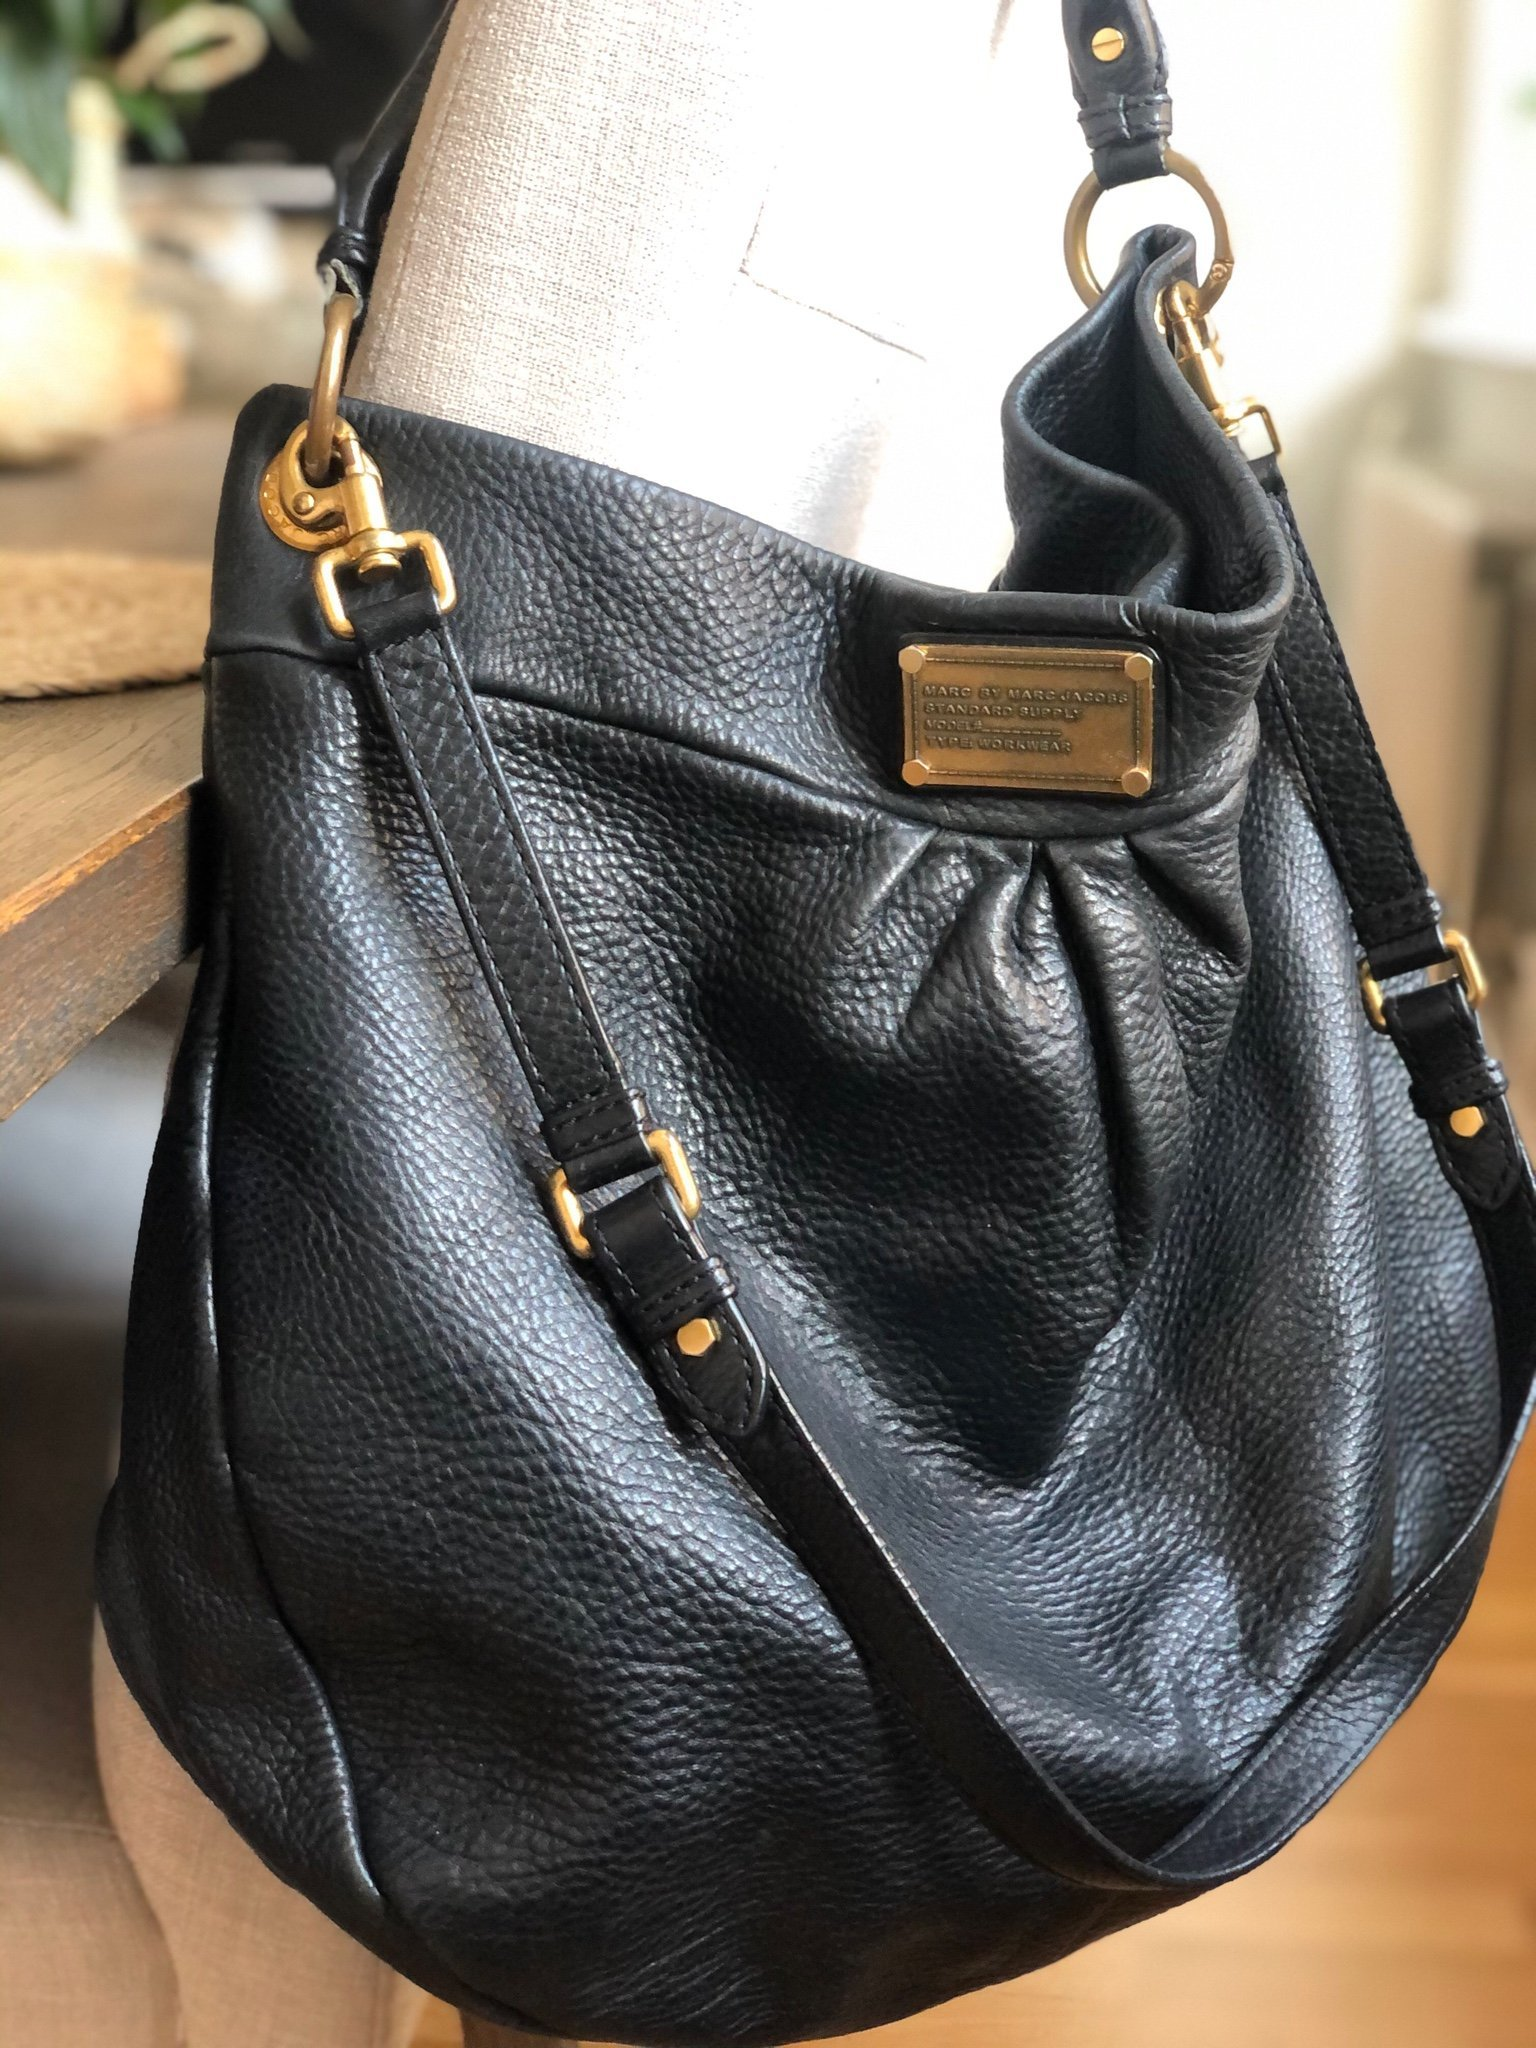 Marc by Marc Jacobs' leather Q 'Hillier Hobo' bag